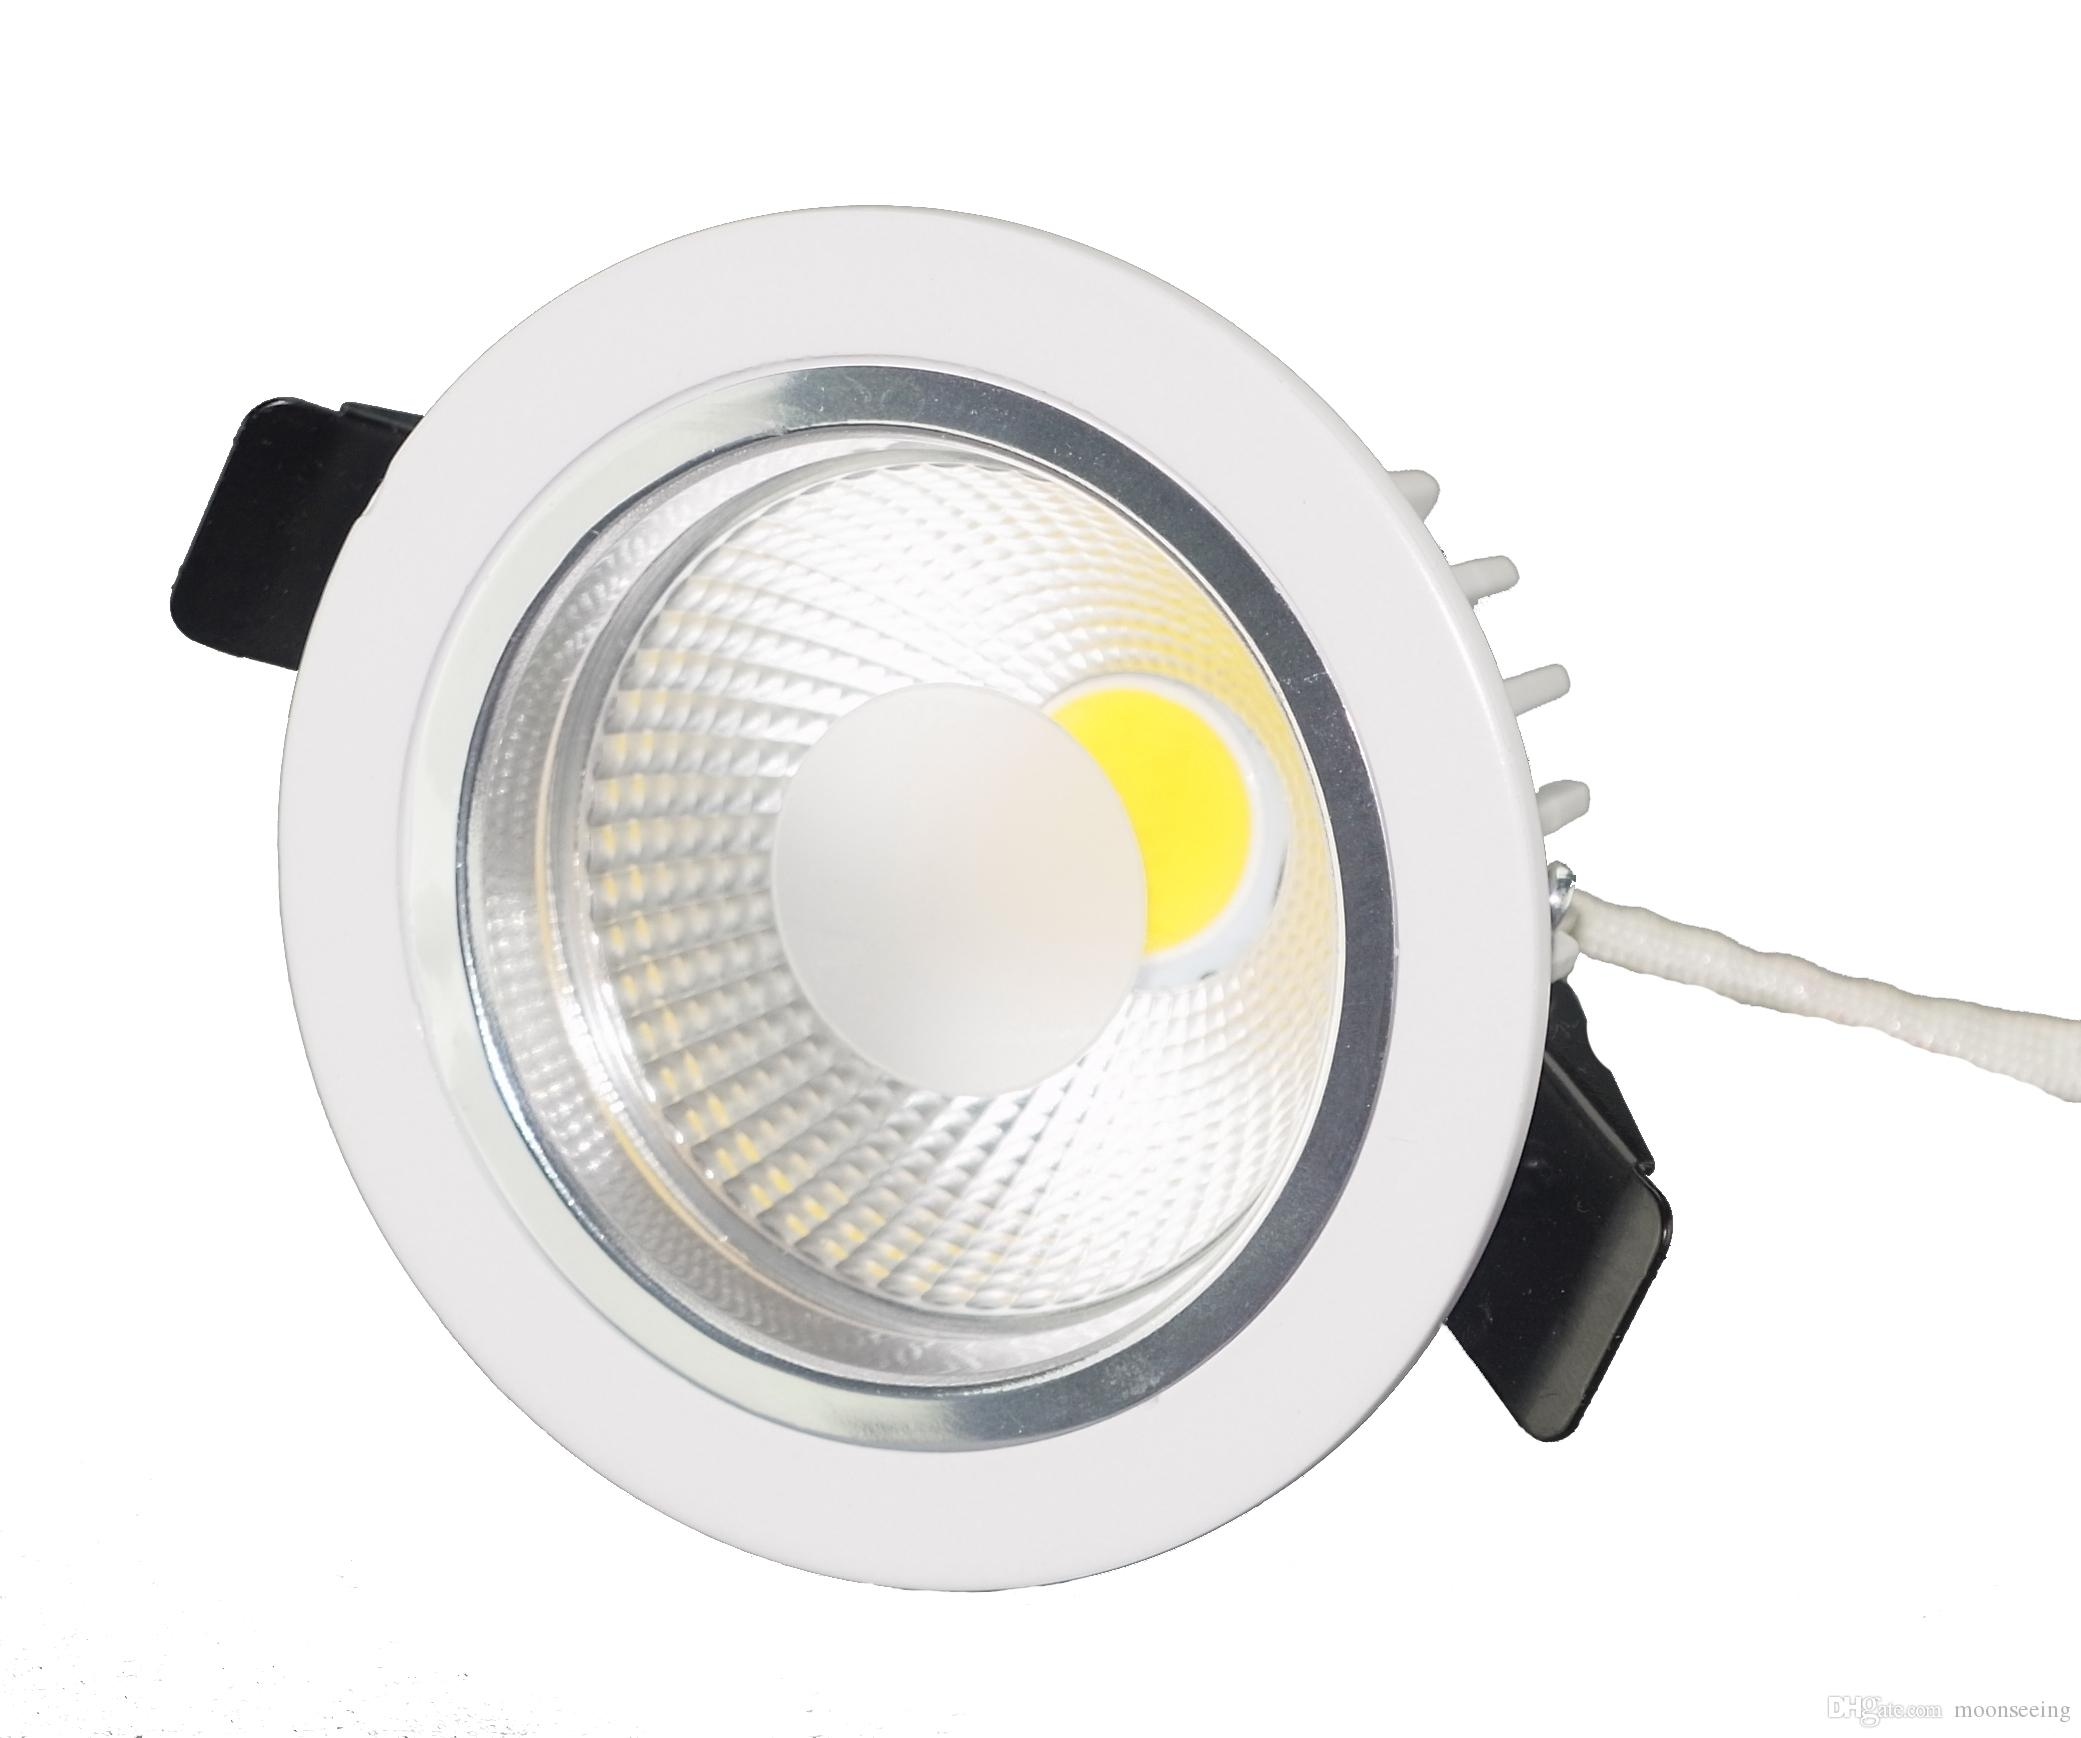 high-power-led-cob-celling-light-5w-dimmable Elegantes High Power Led Dekorationen